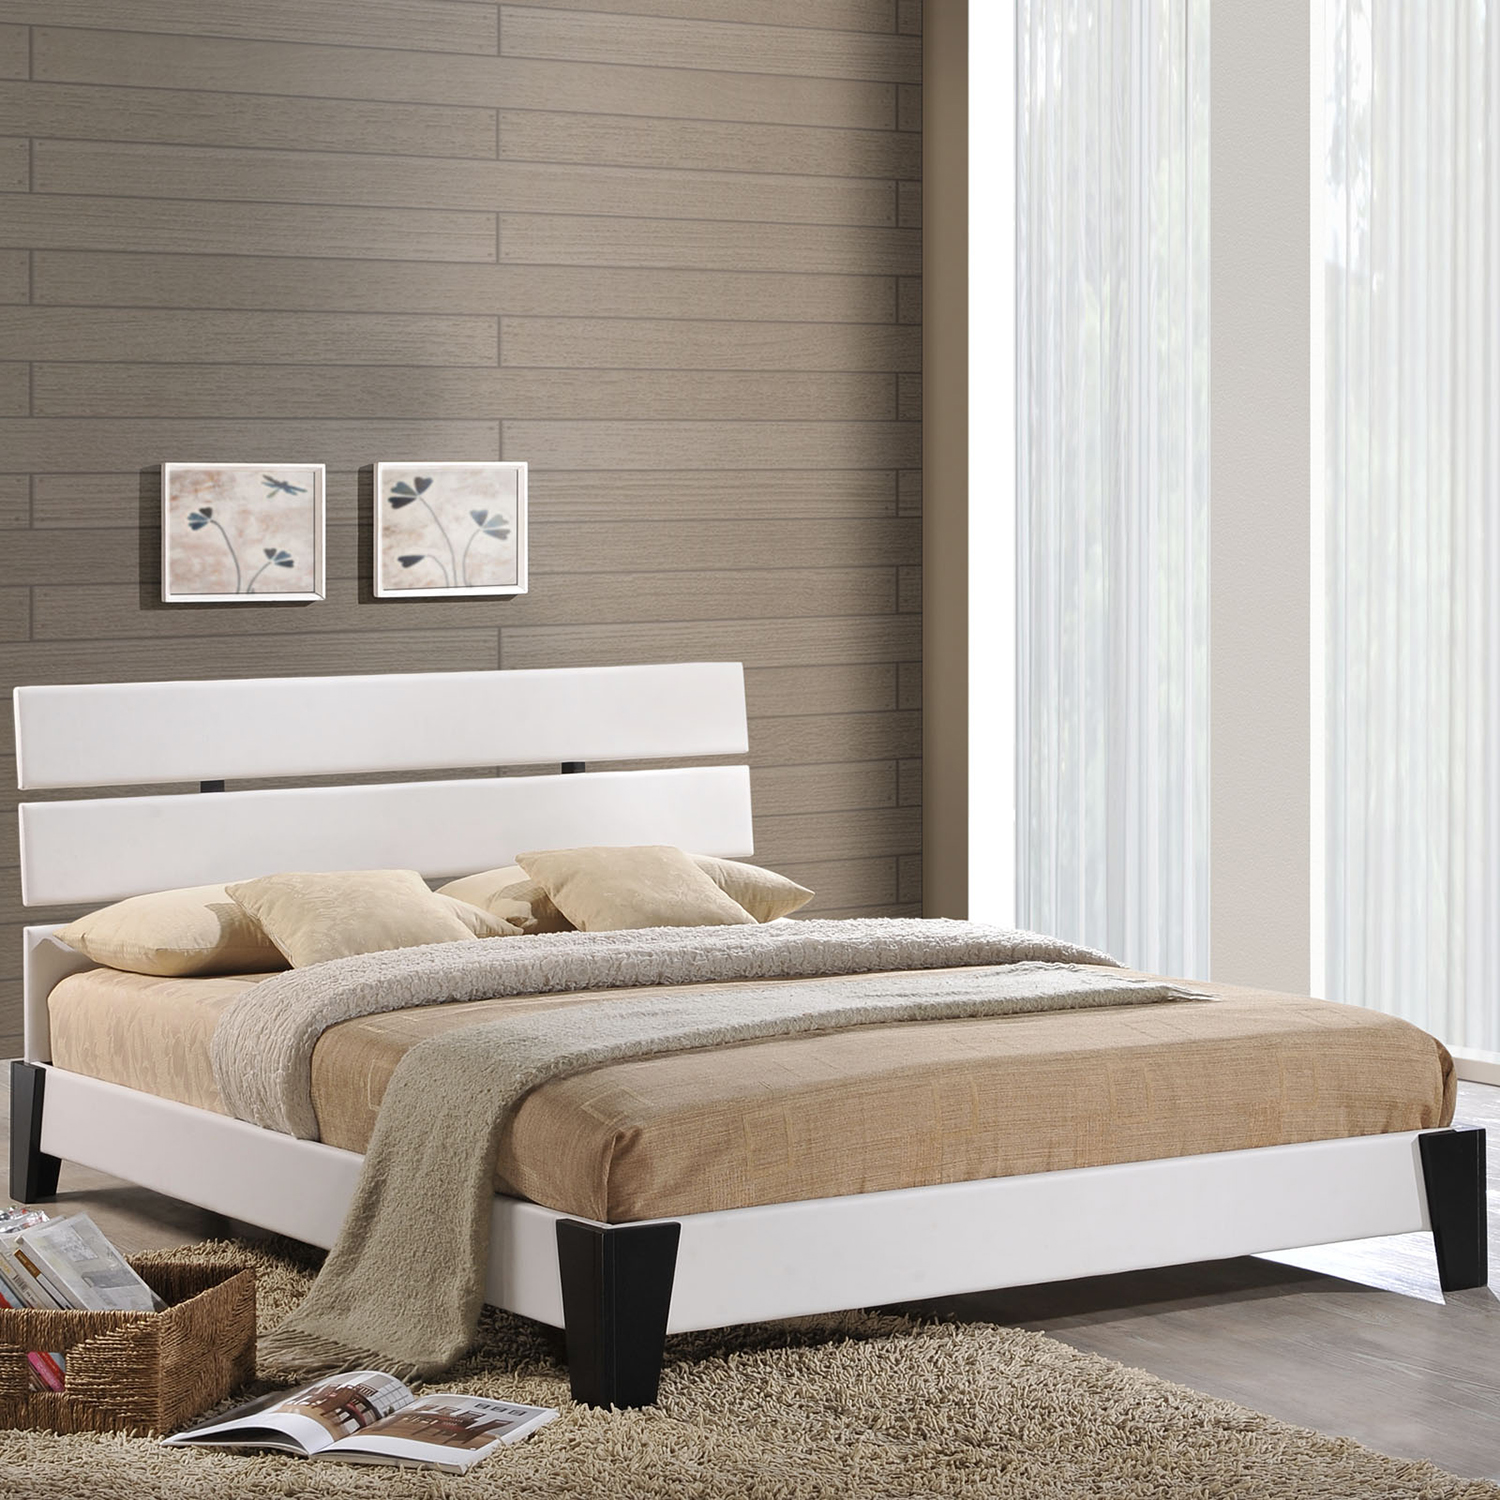 Zoe Full Faux Leather Bed - Platform, White - EEI-MOD-5185-WHI